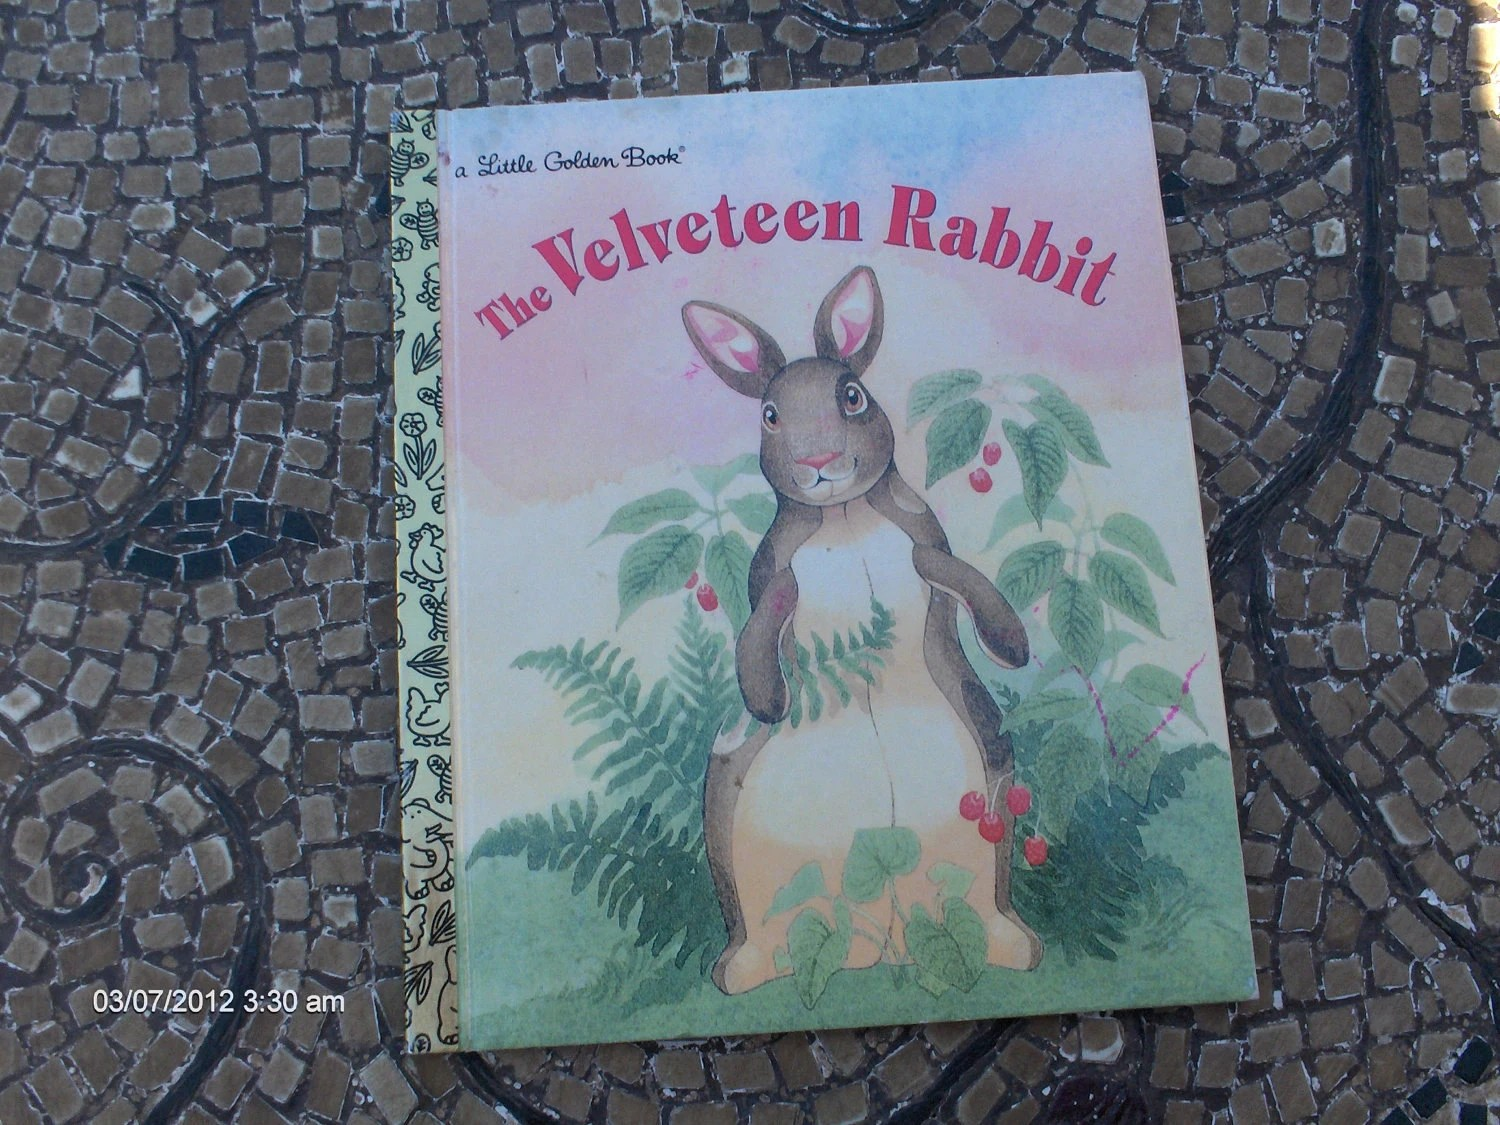 The Velveteen Rabbit Adapted From The Story By Margery